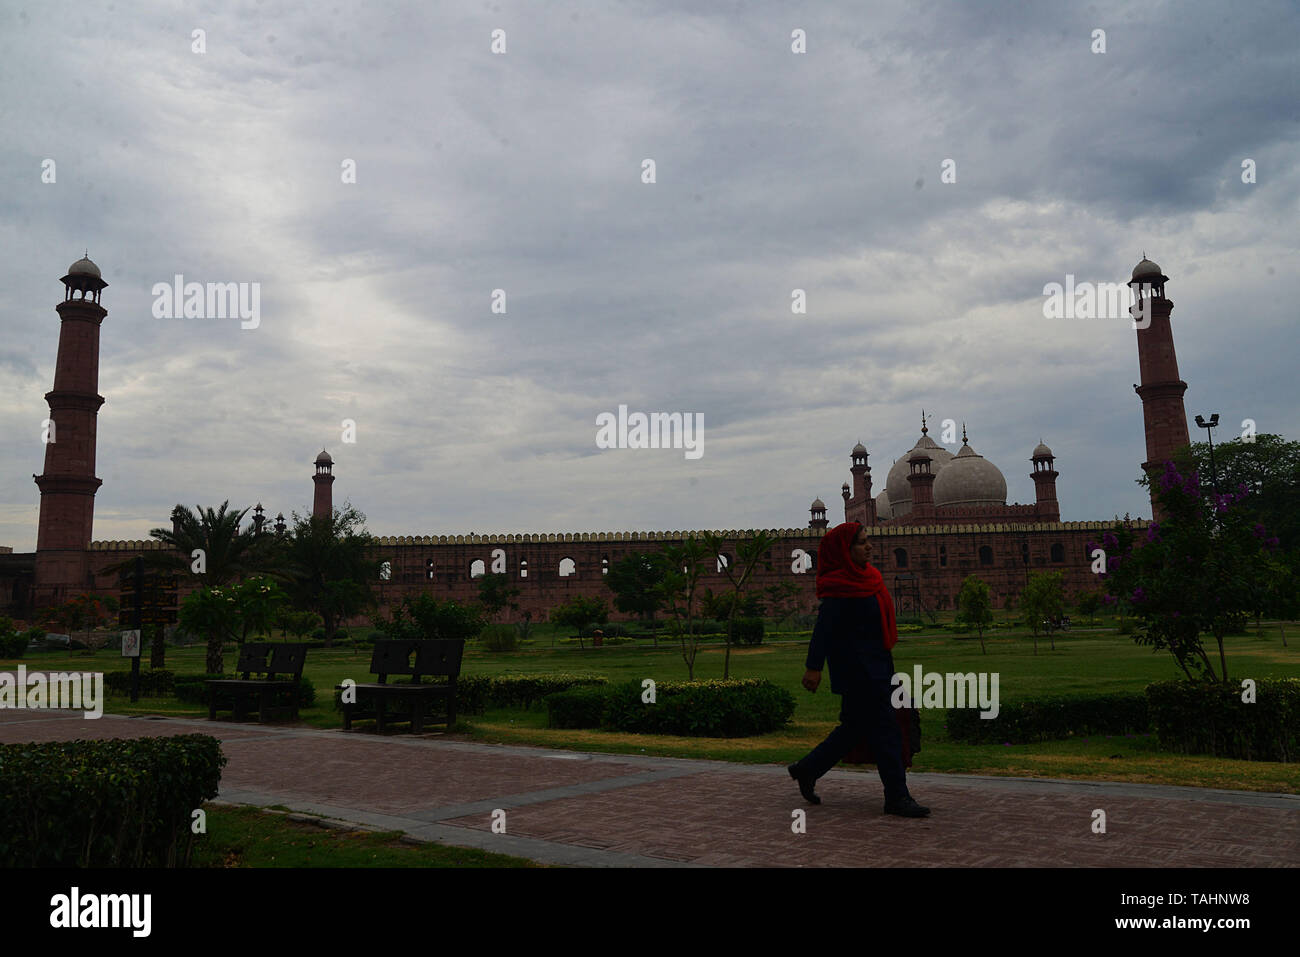 Historical Places In Pakistan Stock Photos & Historical